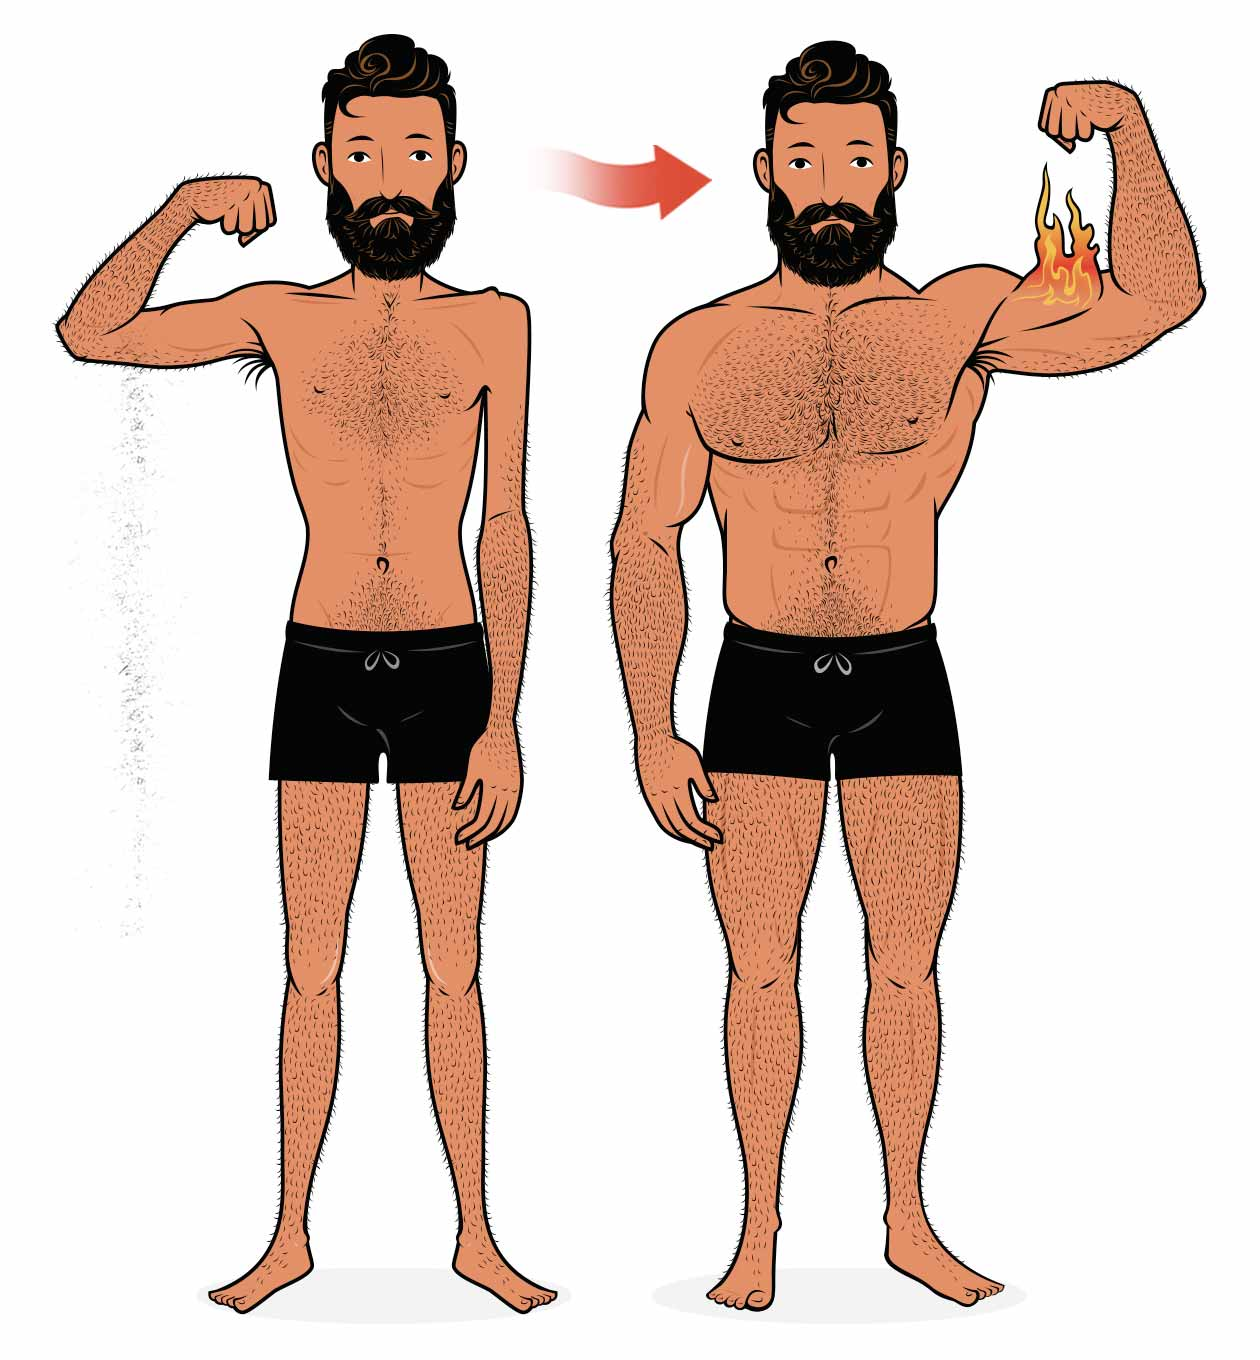 Outlift illustration showing a skinny man building muscle by lifting in the hypertrophy rep range.